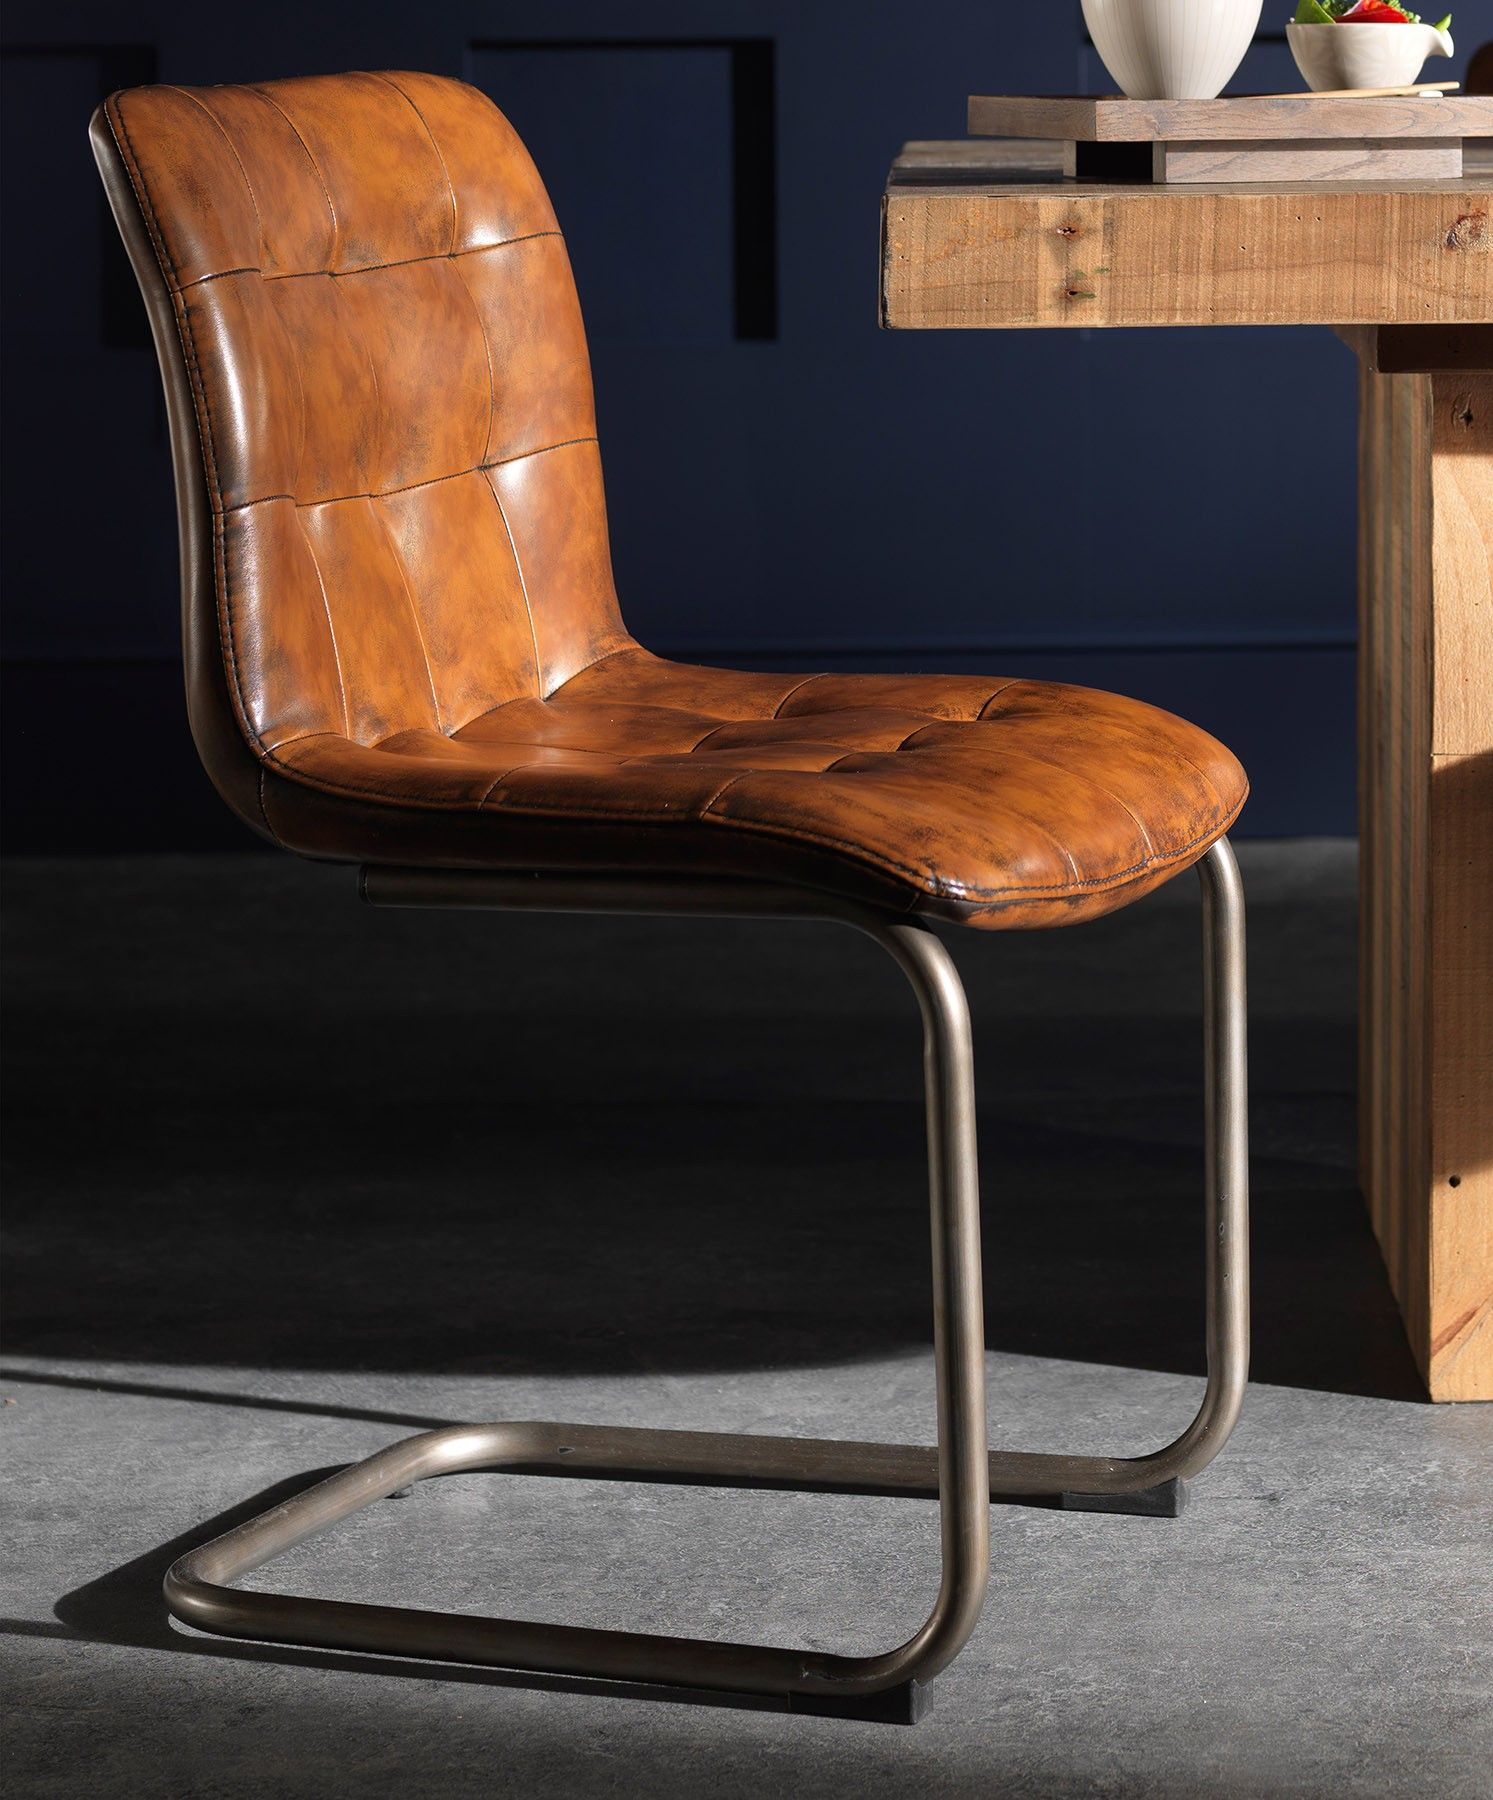 Metal Frame Leather Dining Chair Blinds For Deer Hunting Vintage Perfect As A Or Office Sturdy Comfort Is Second To None